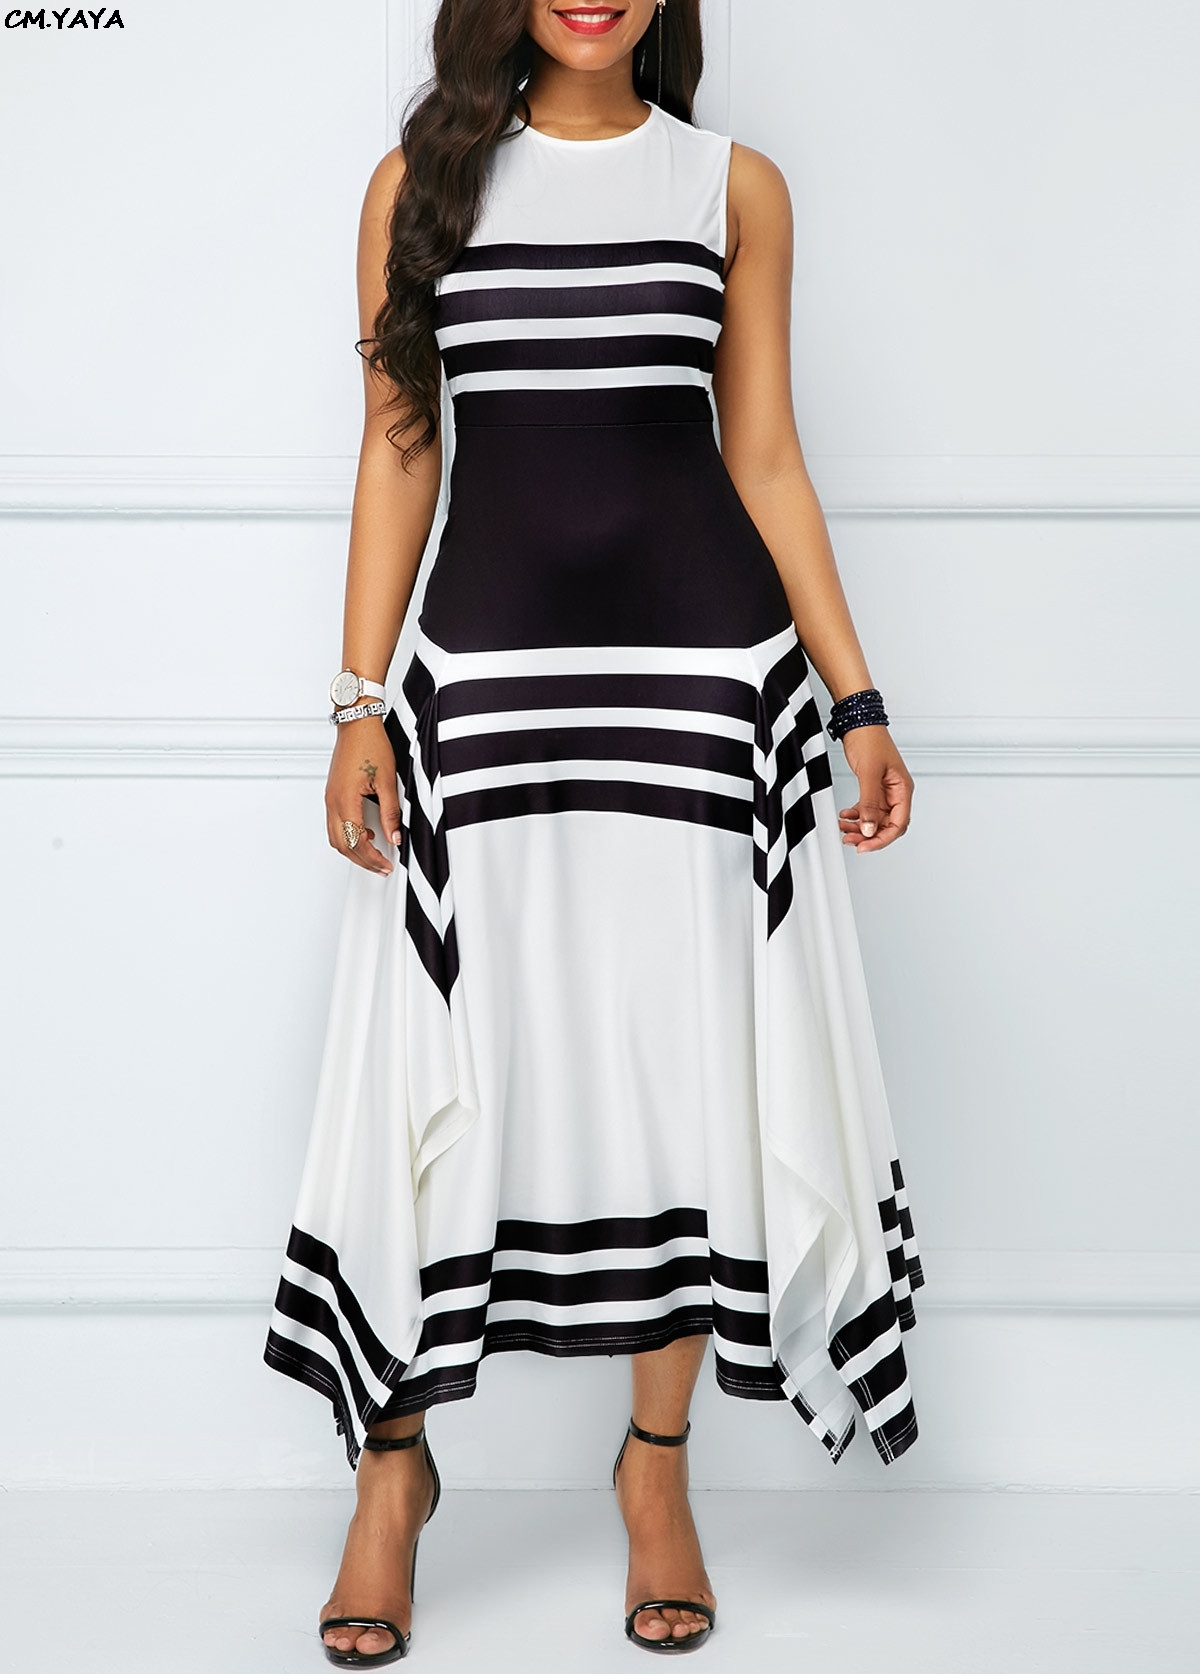 Buy black white striped maxi dress and get free shipping on AliExpress.com 507d014ffcea